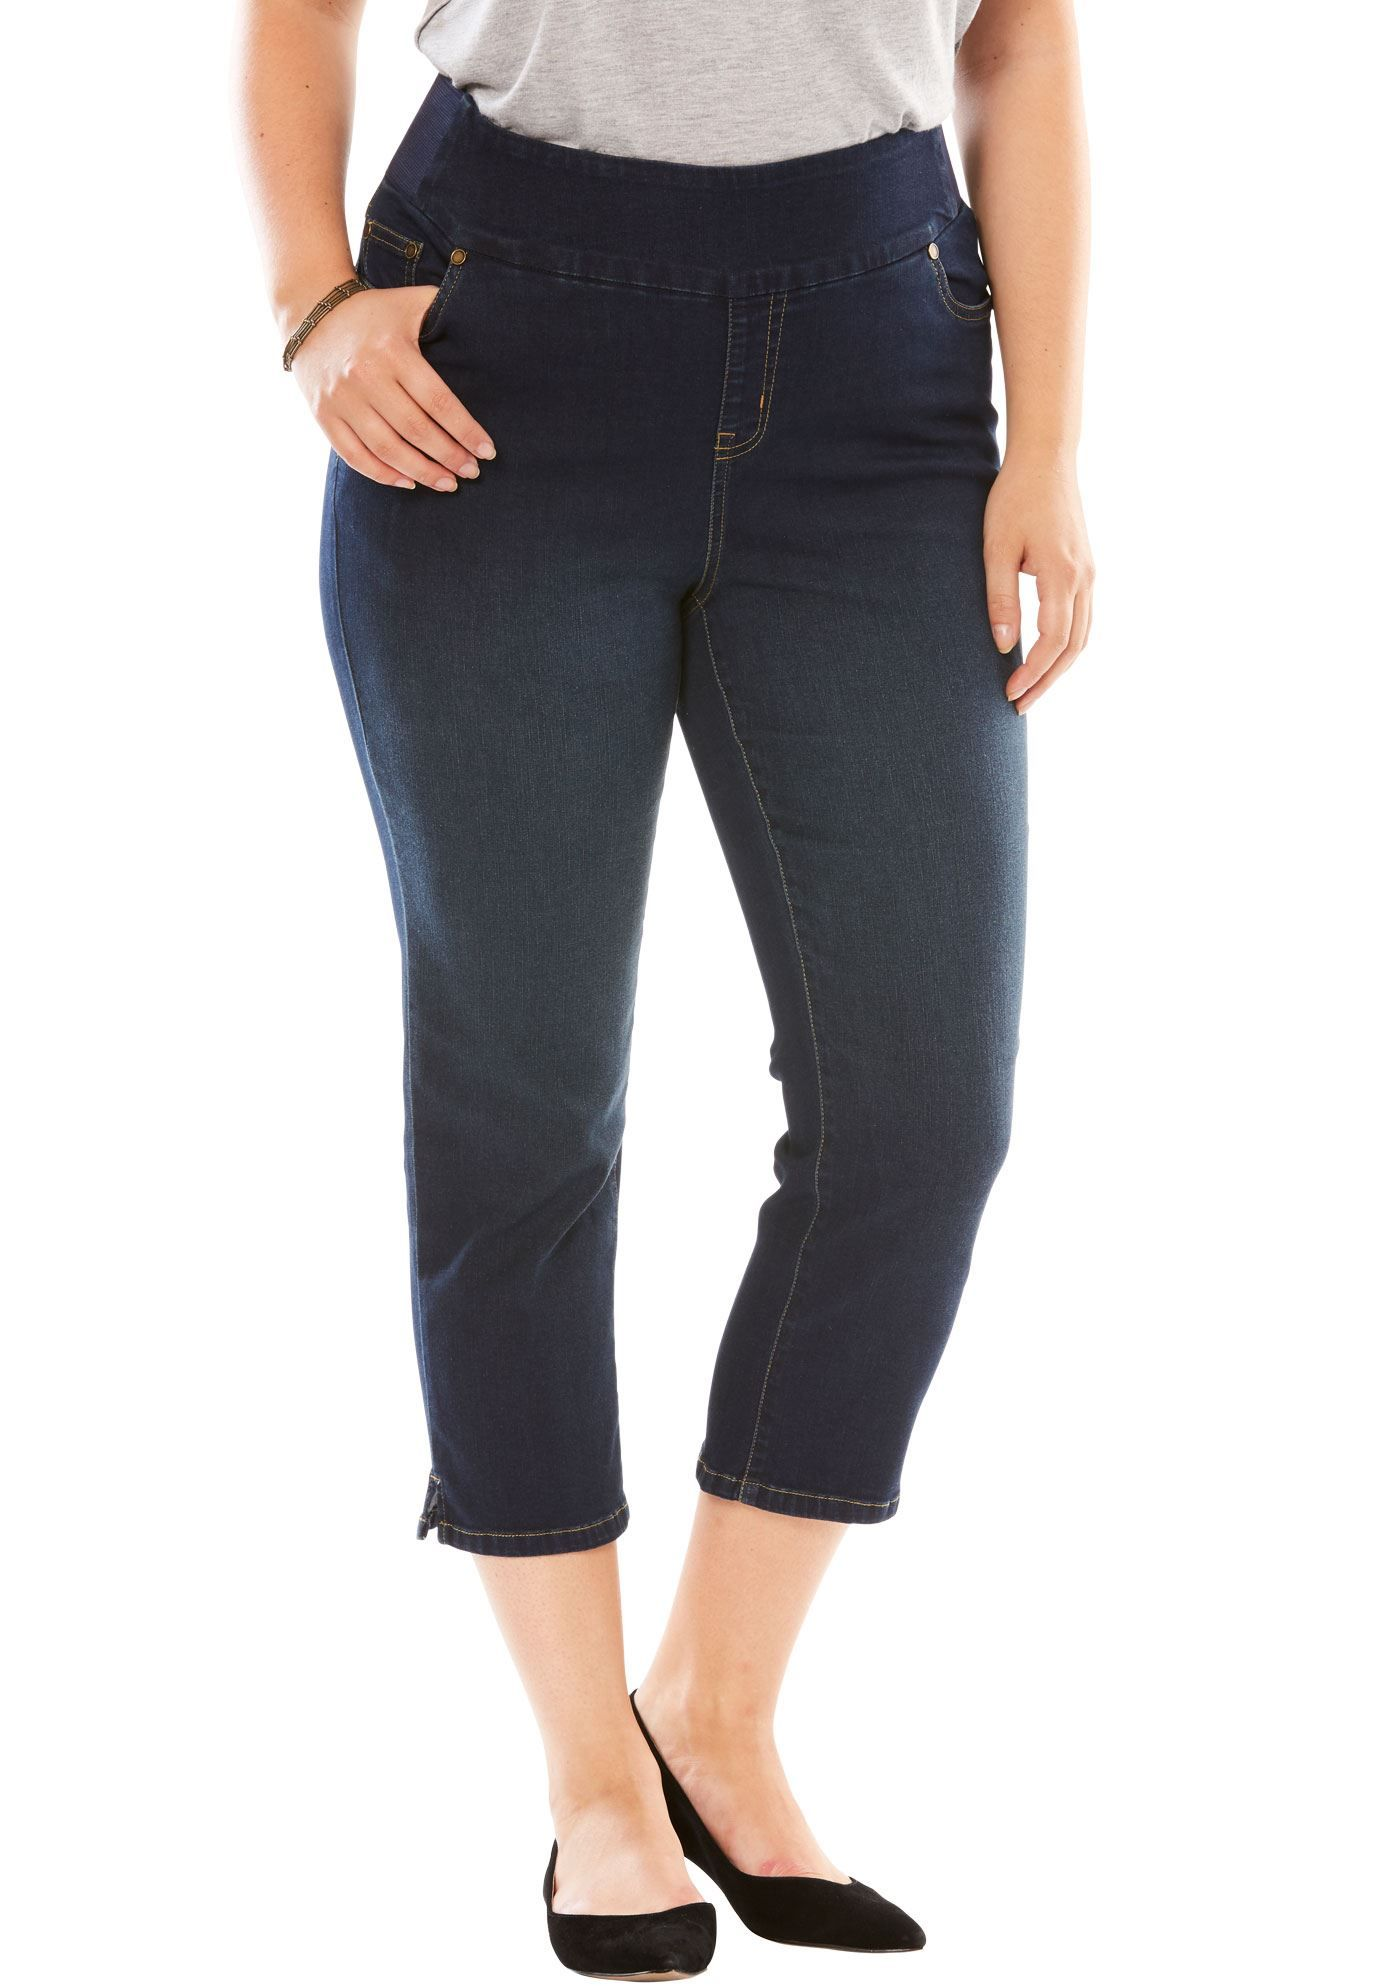 Woman Within Womens Plus Size Petite Smooth Waist Capri Jean